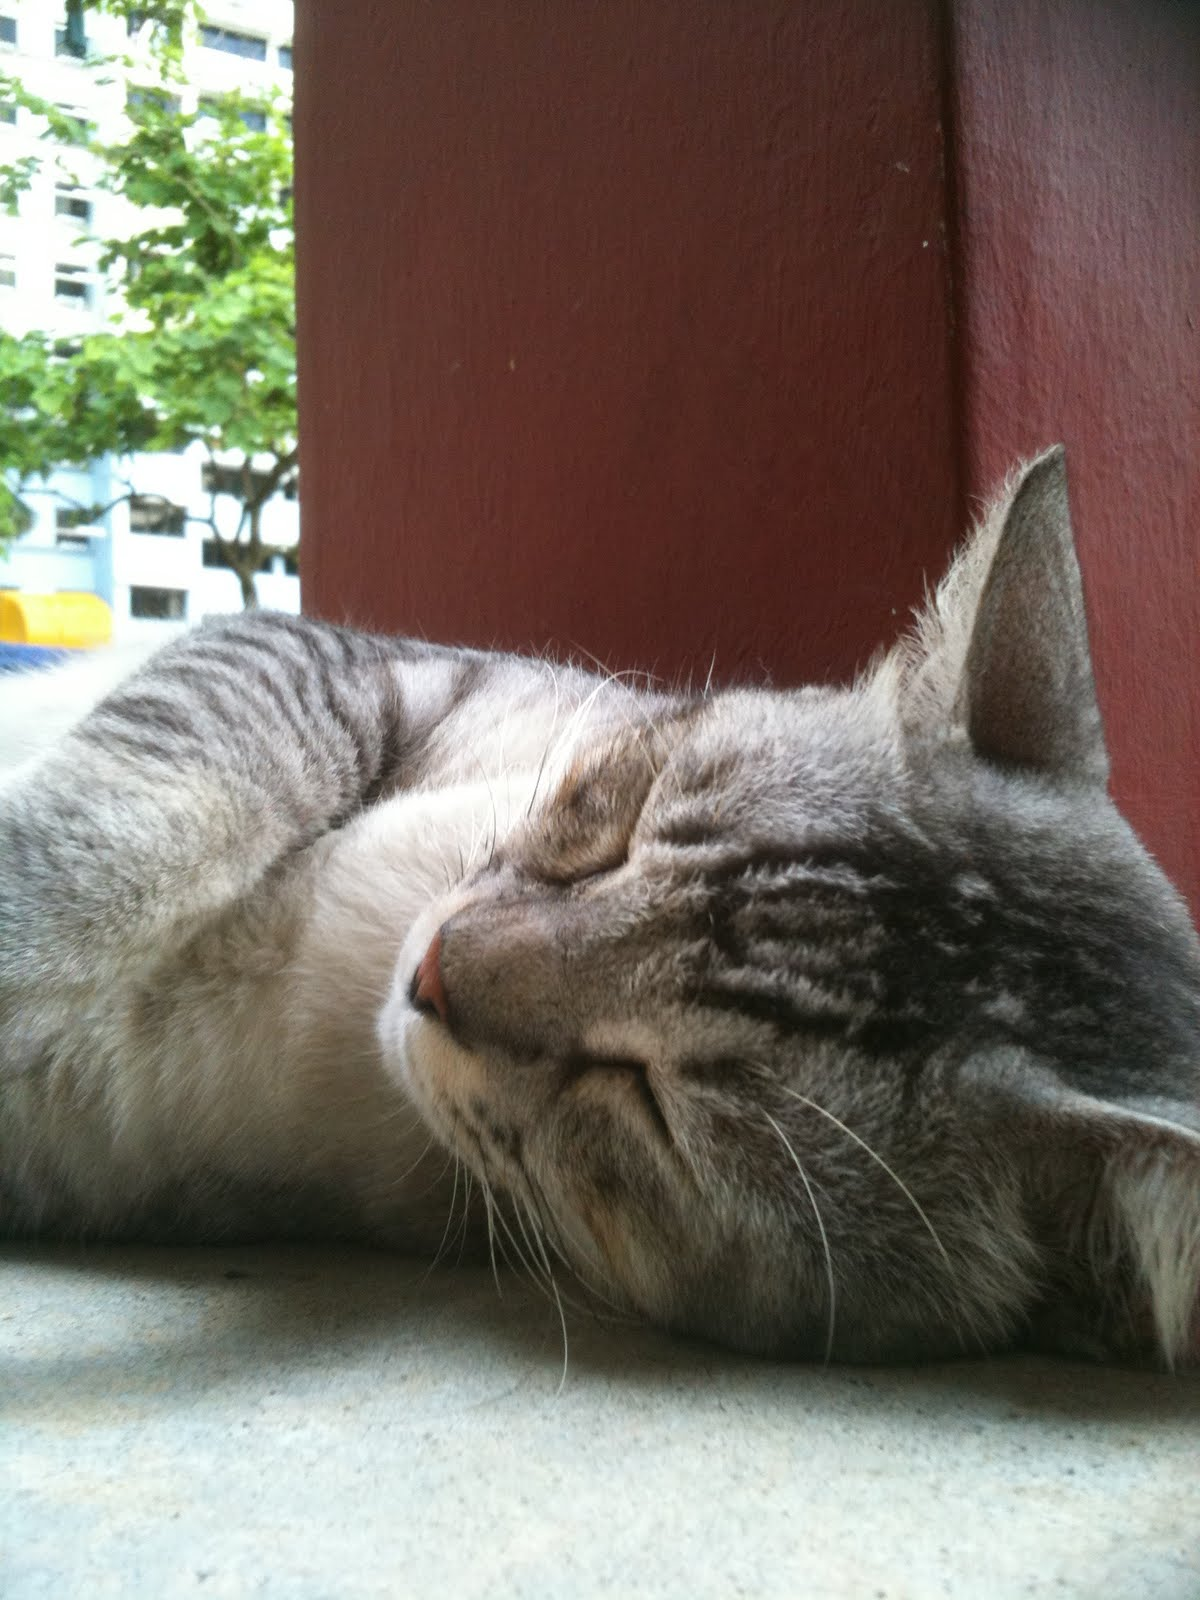 Singapore Community Cats: A good-looking community cat